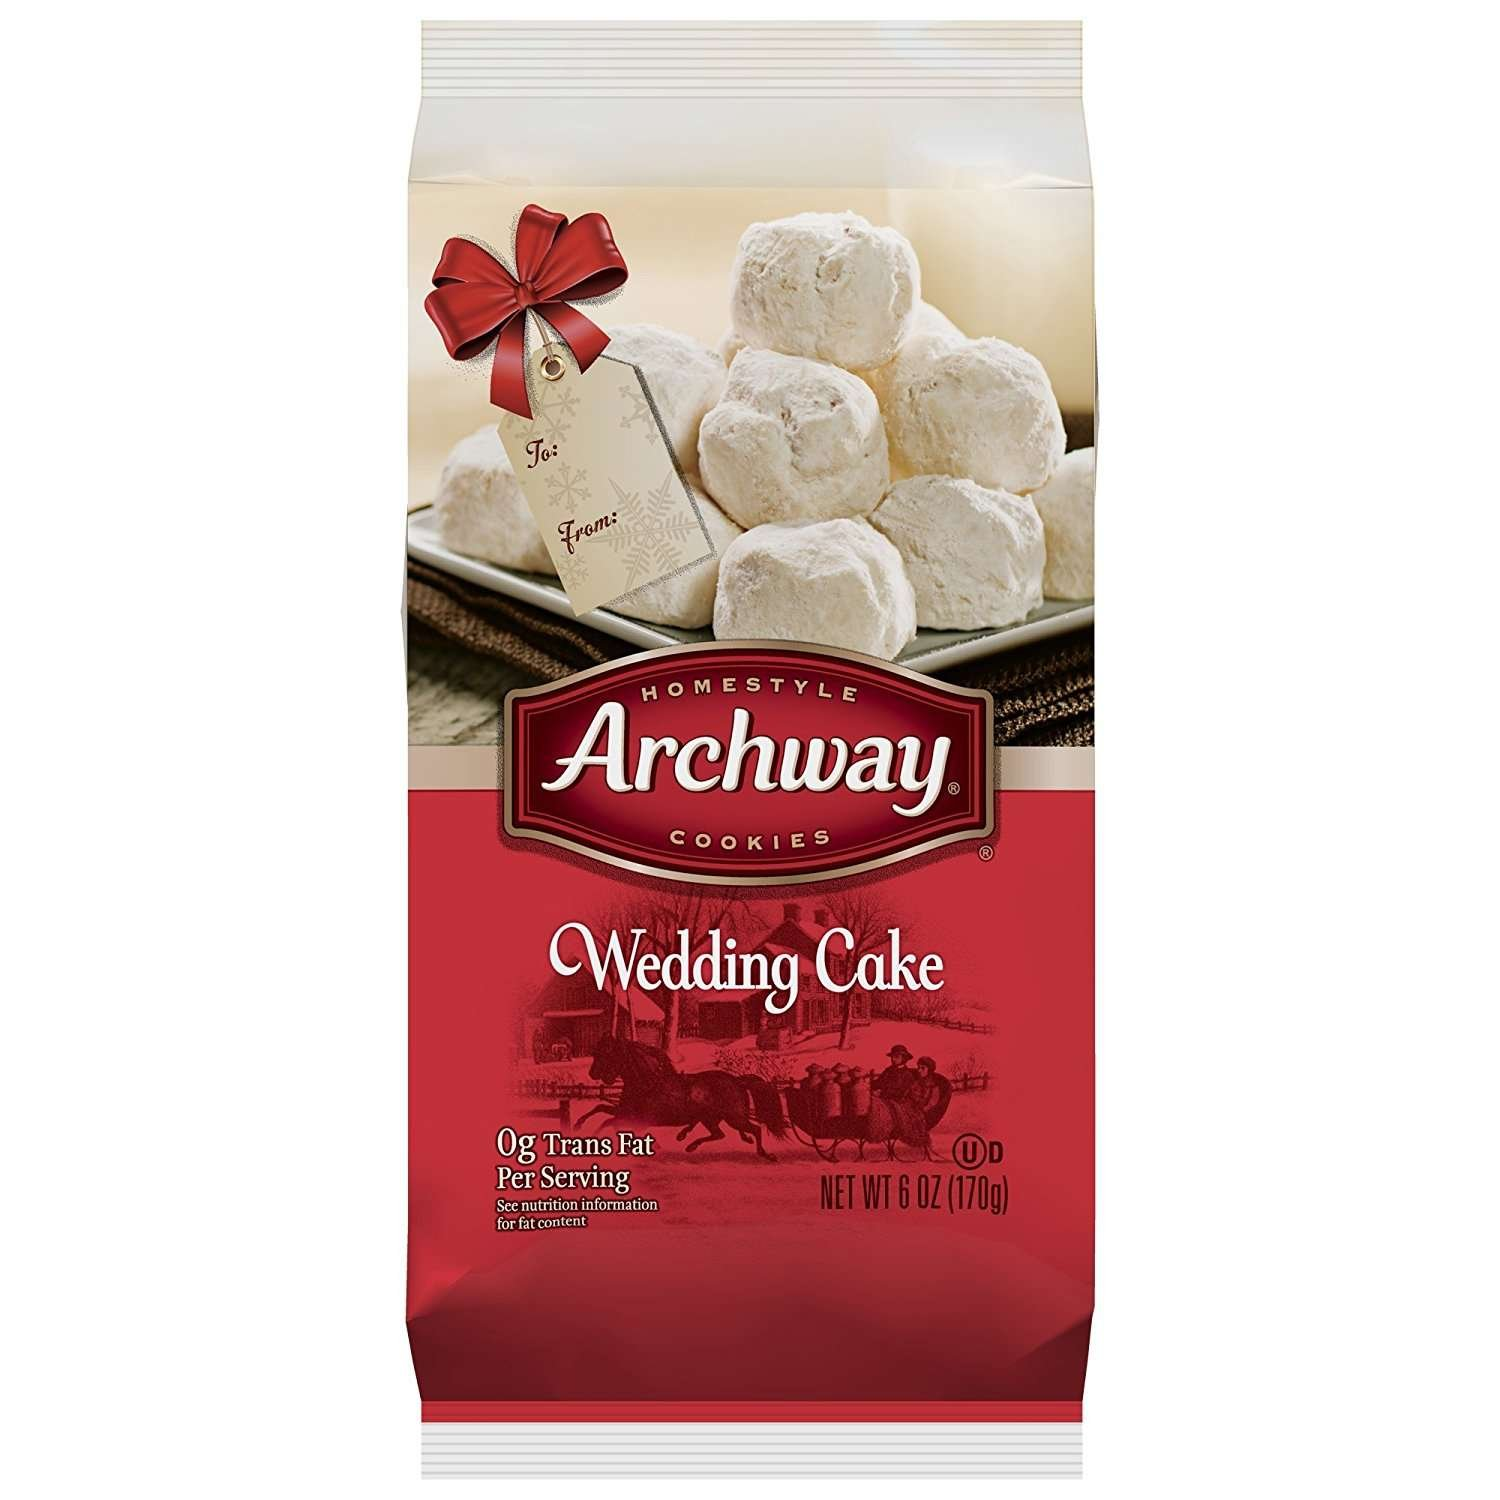 wedding cake cookies archway archway wedding cake cookies two 6 oz boxes 22241